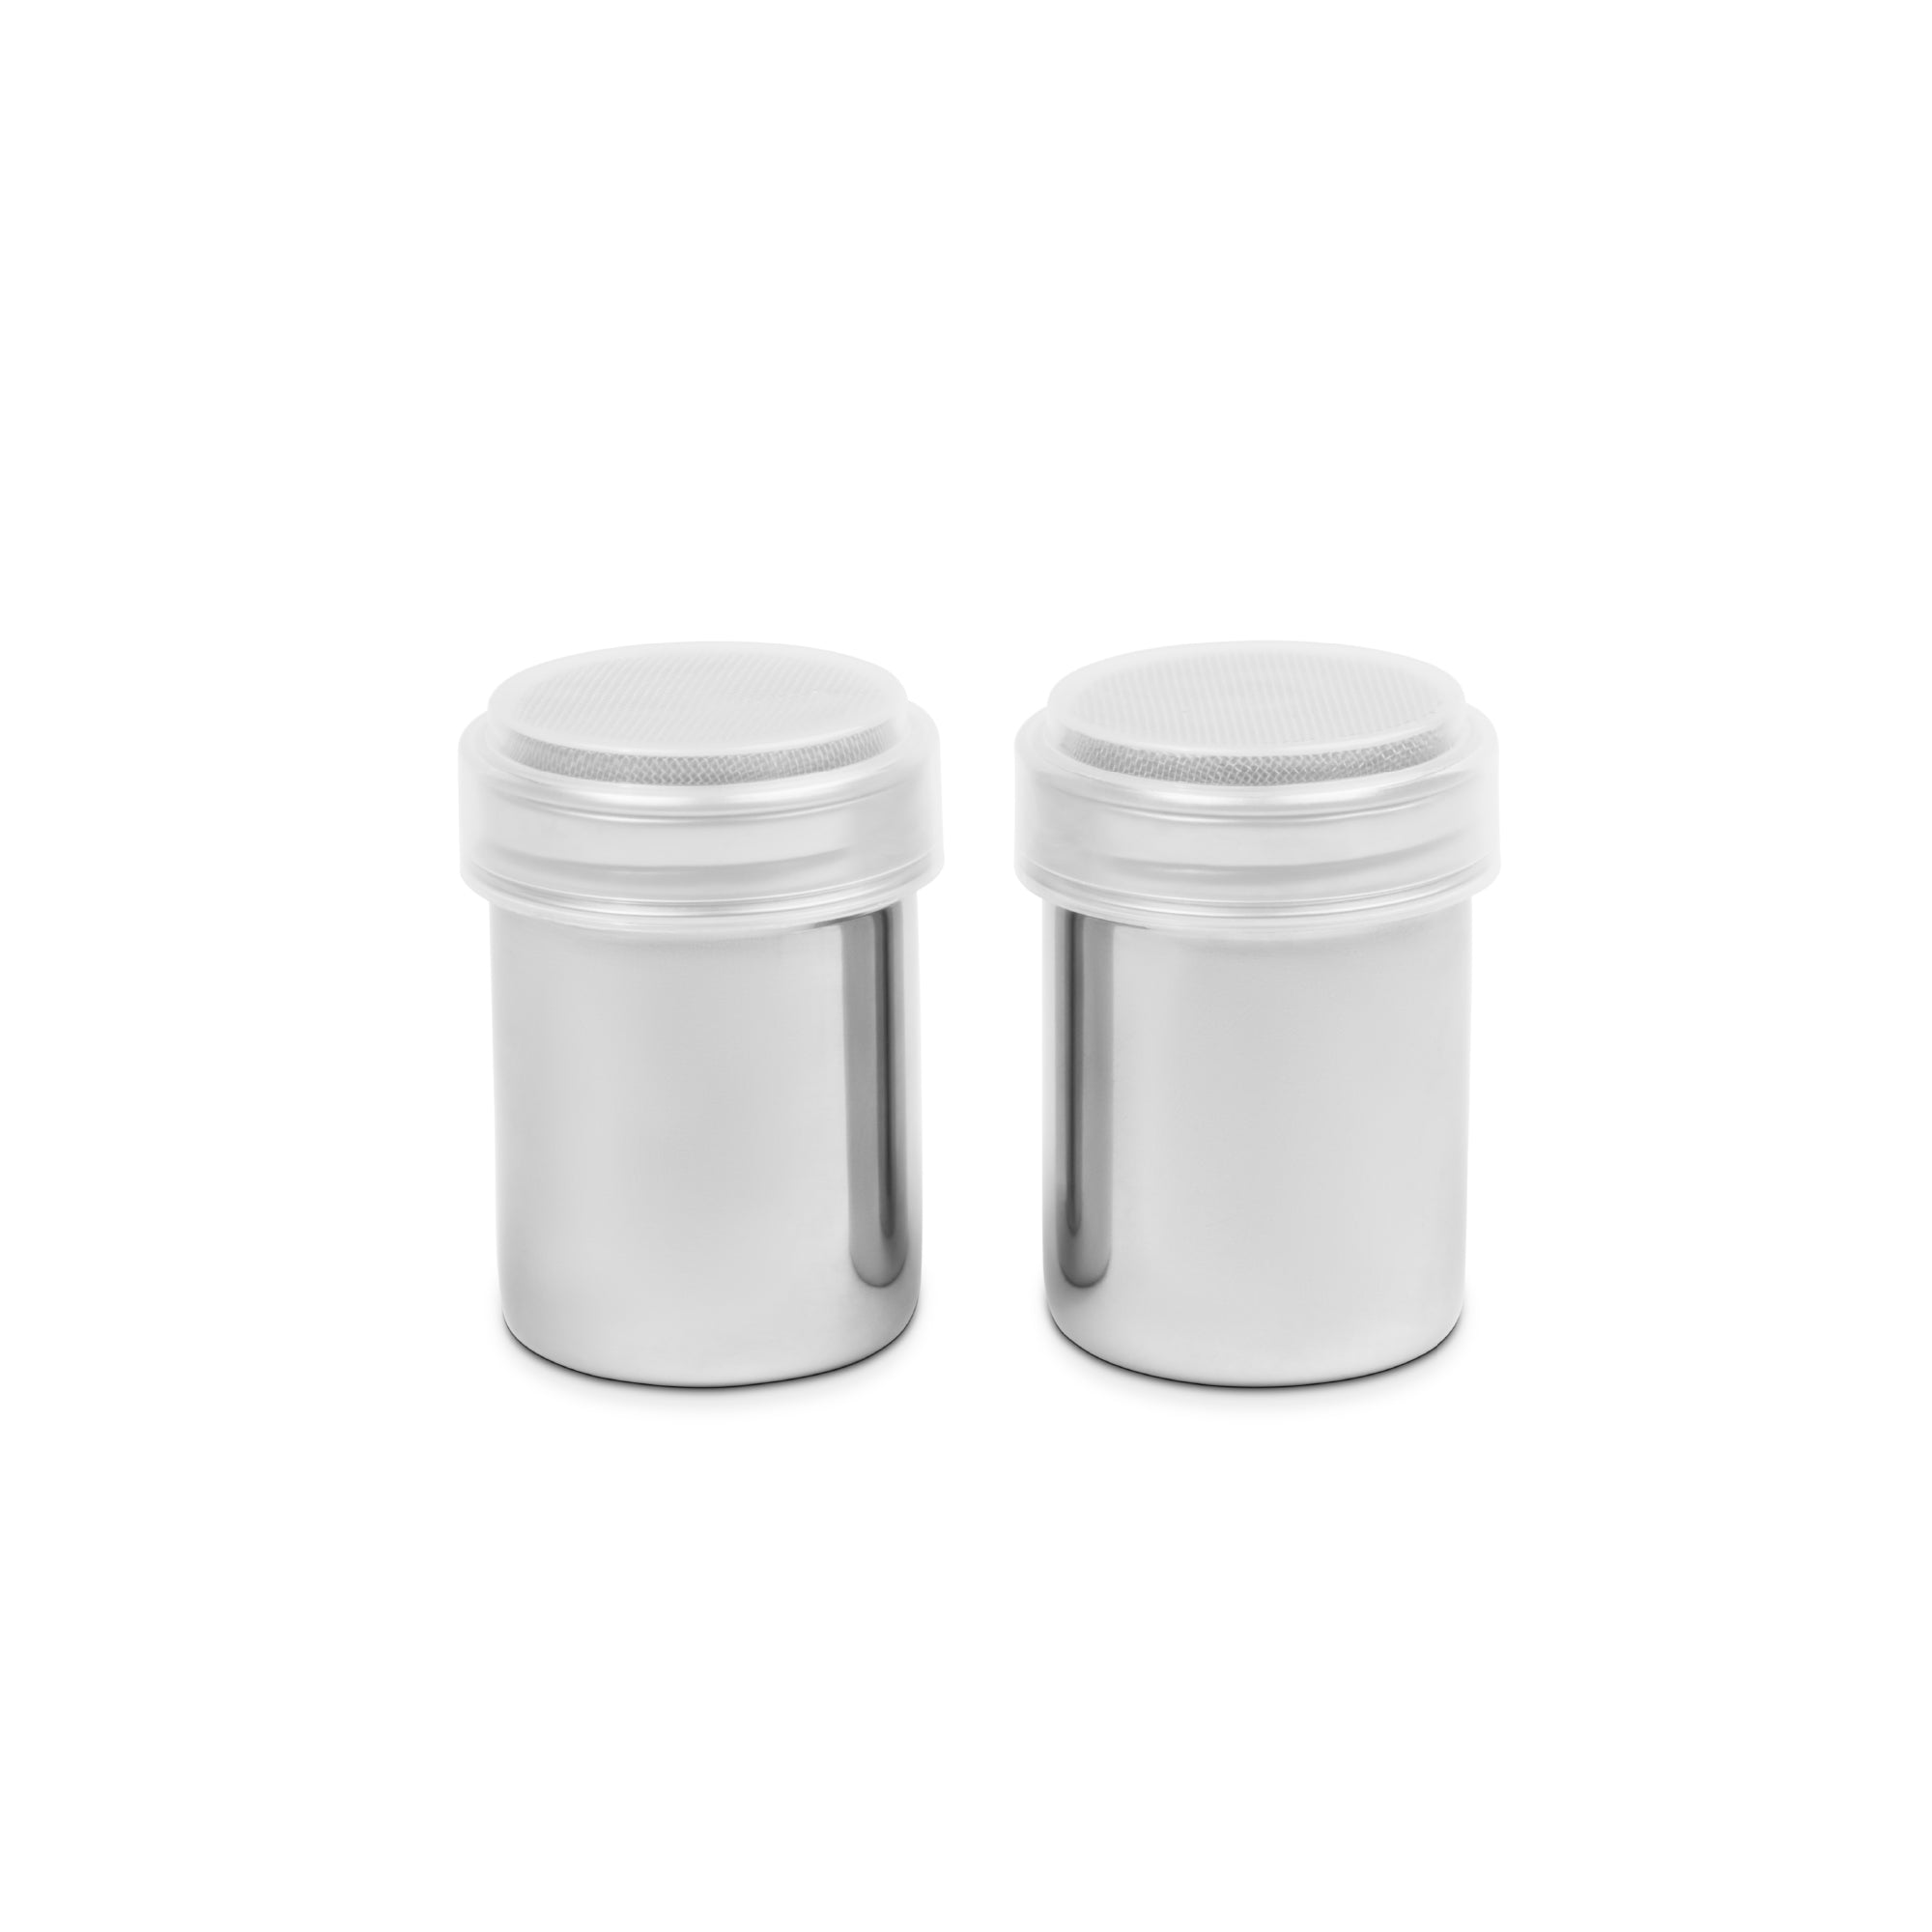 EspressoWorks Powder Shakers Stainless Steel